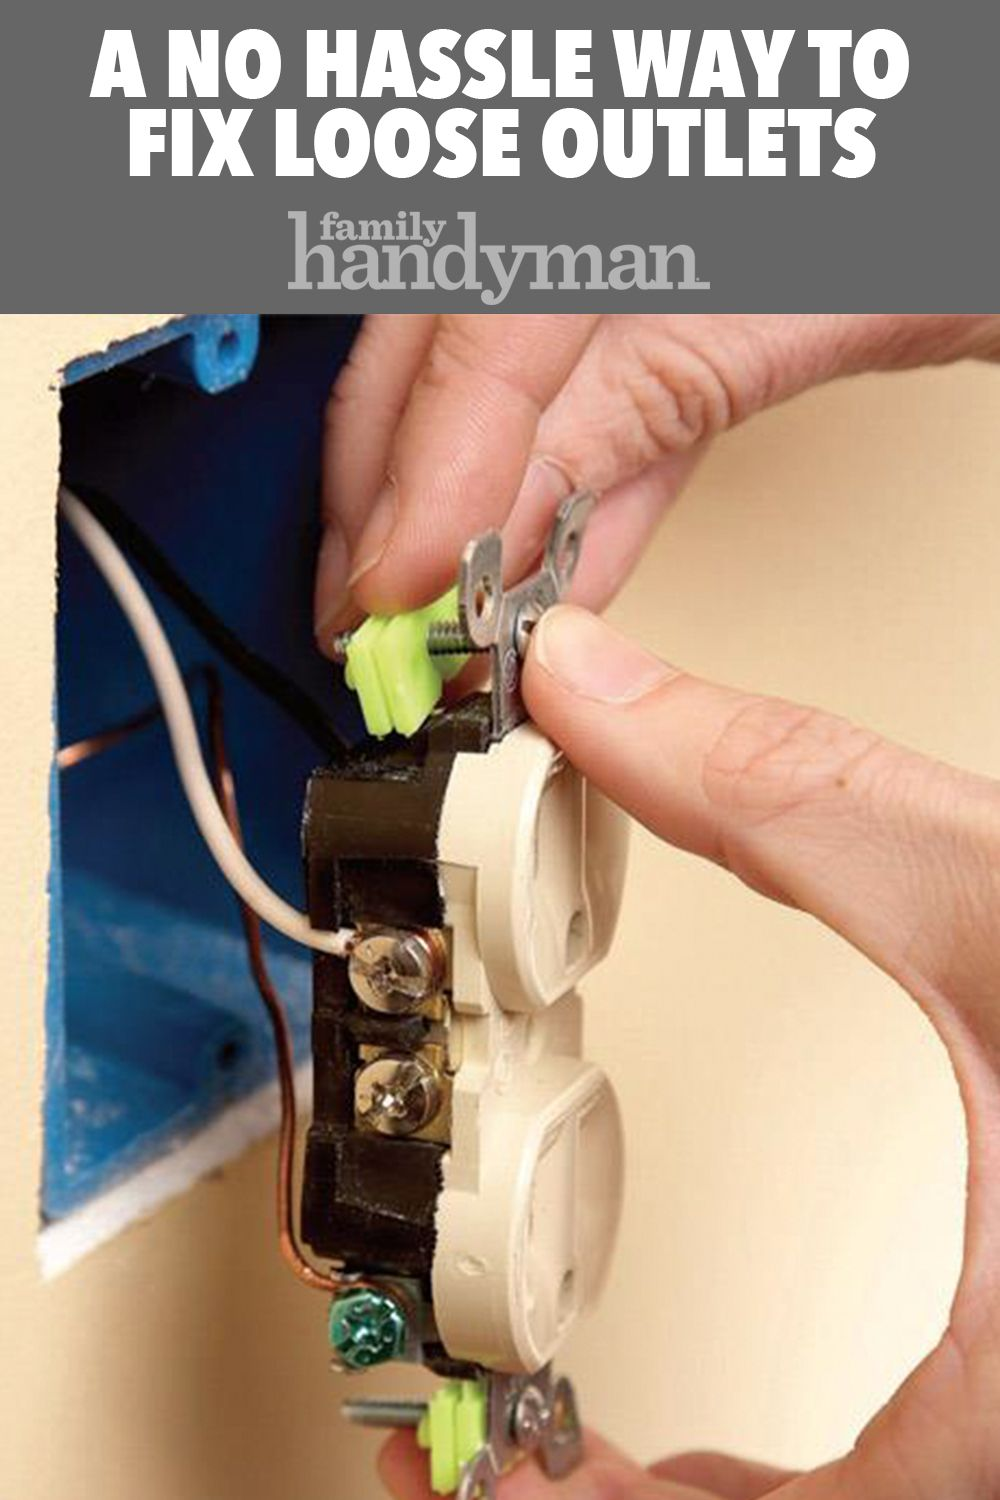 Repair Electrical Outlets Fix Loose Outlets Diy Home Repair Home Repair Electrical Outlets